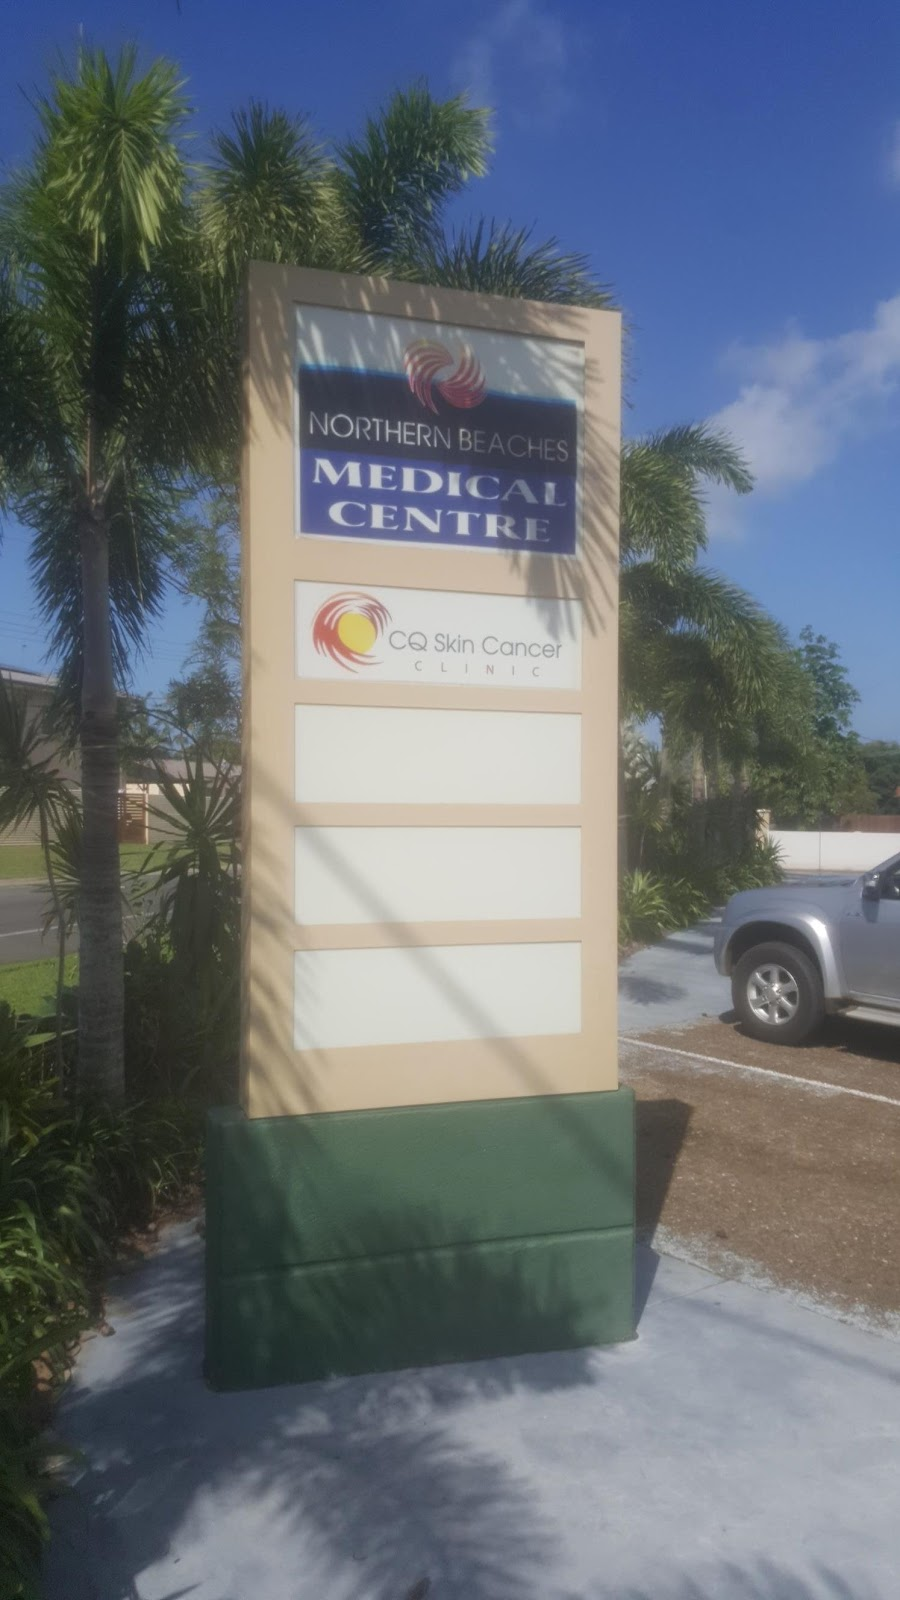 CQ Skin Cancer Clinic | doctor | 9/11 Downie Ave, Bucasia QLD 4750, Australia | 0749547755 OR +61 7 4954 7755